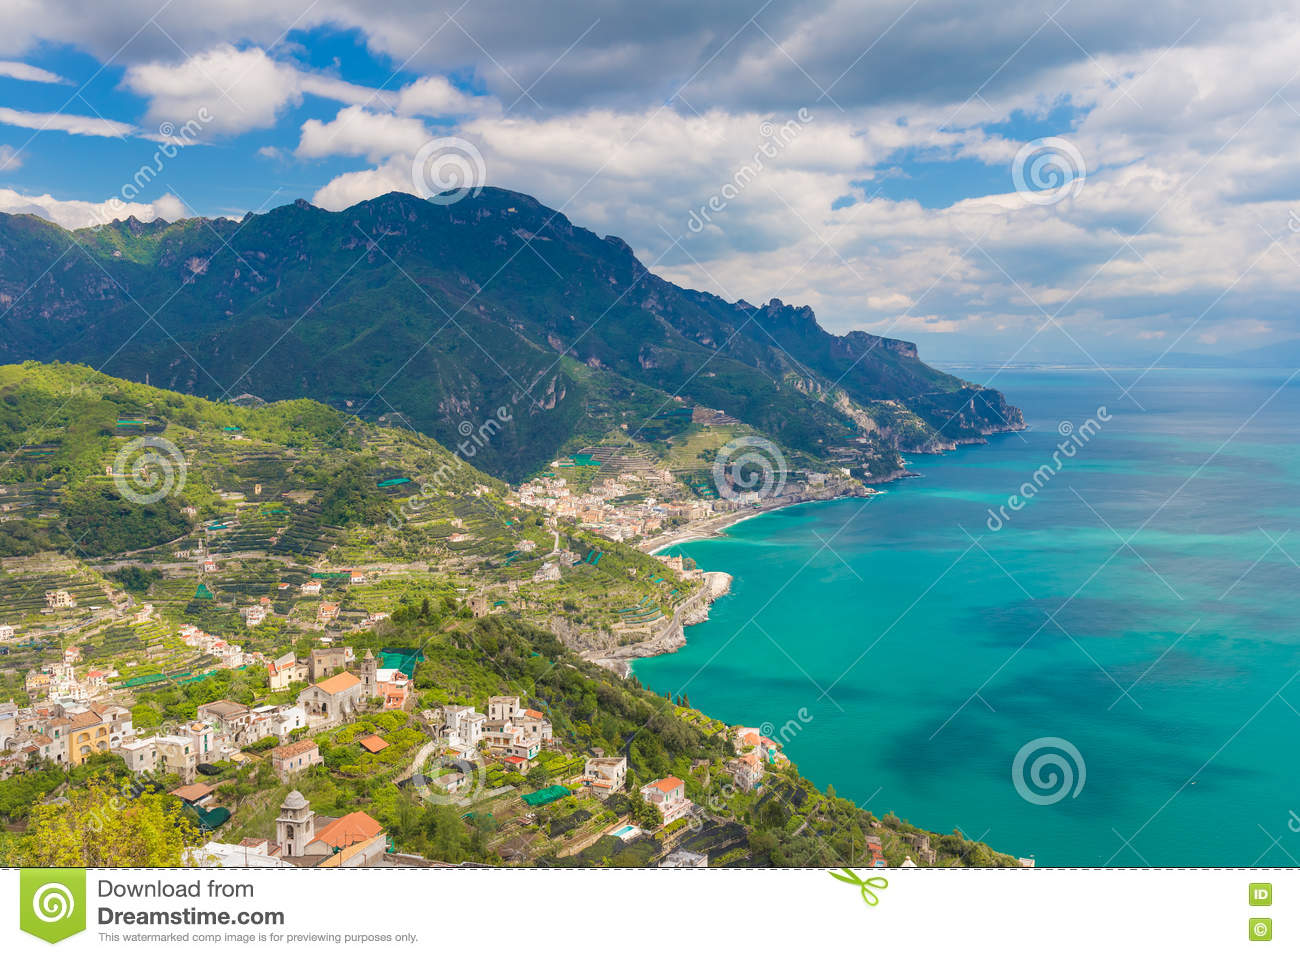 Amazing view of Amalfi coast and town of Maiori from Ravello village, Campania region, South of Italy